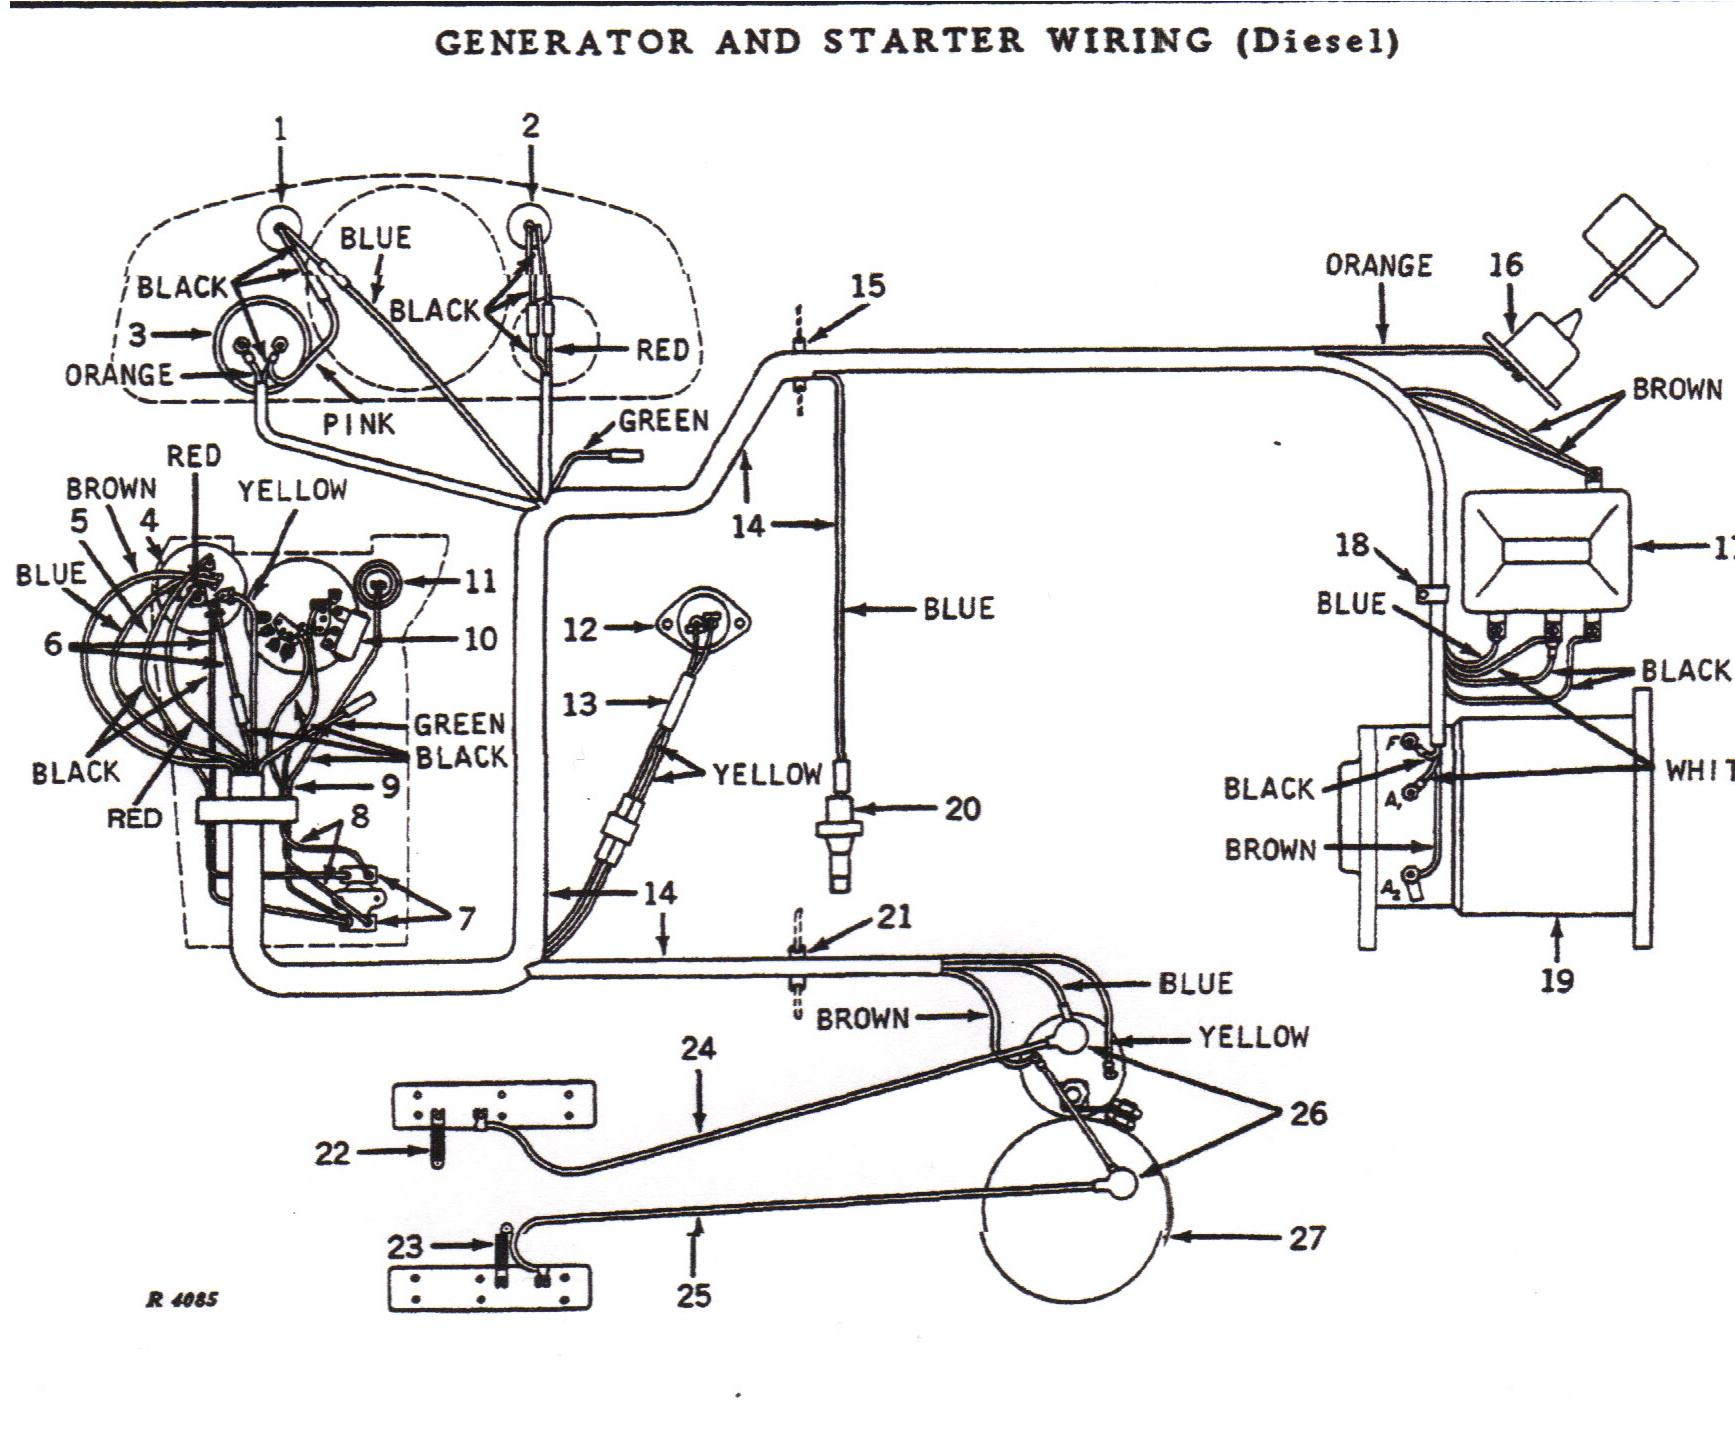 DIAGRAM] John Deere Tractor Wiring Diagram FULL Version HD Quality Wiring  Diagram - LIVERDIAGRAM2.RIFIUTICONNECTION.IT | X495 Pto Wiring Diagram |  | Rifiuti Connection